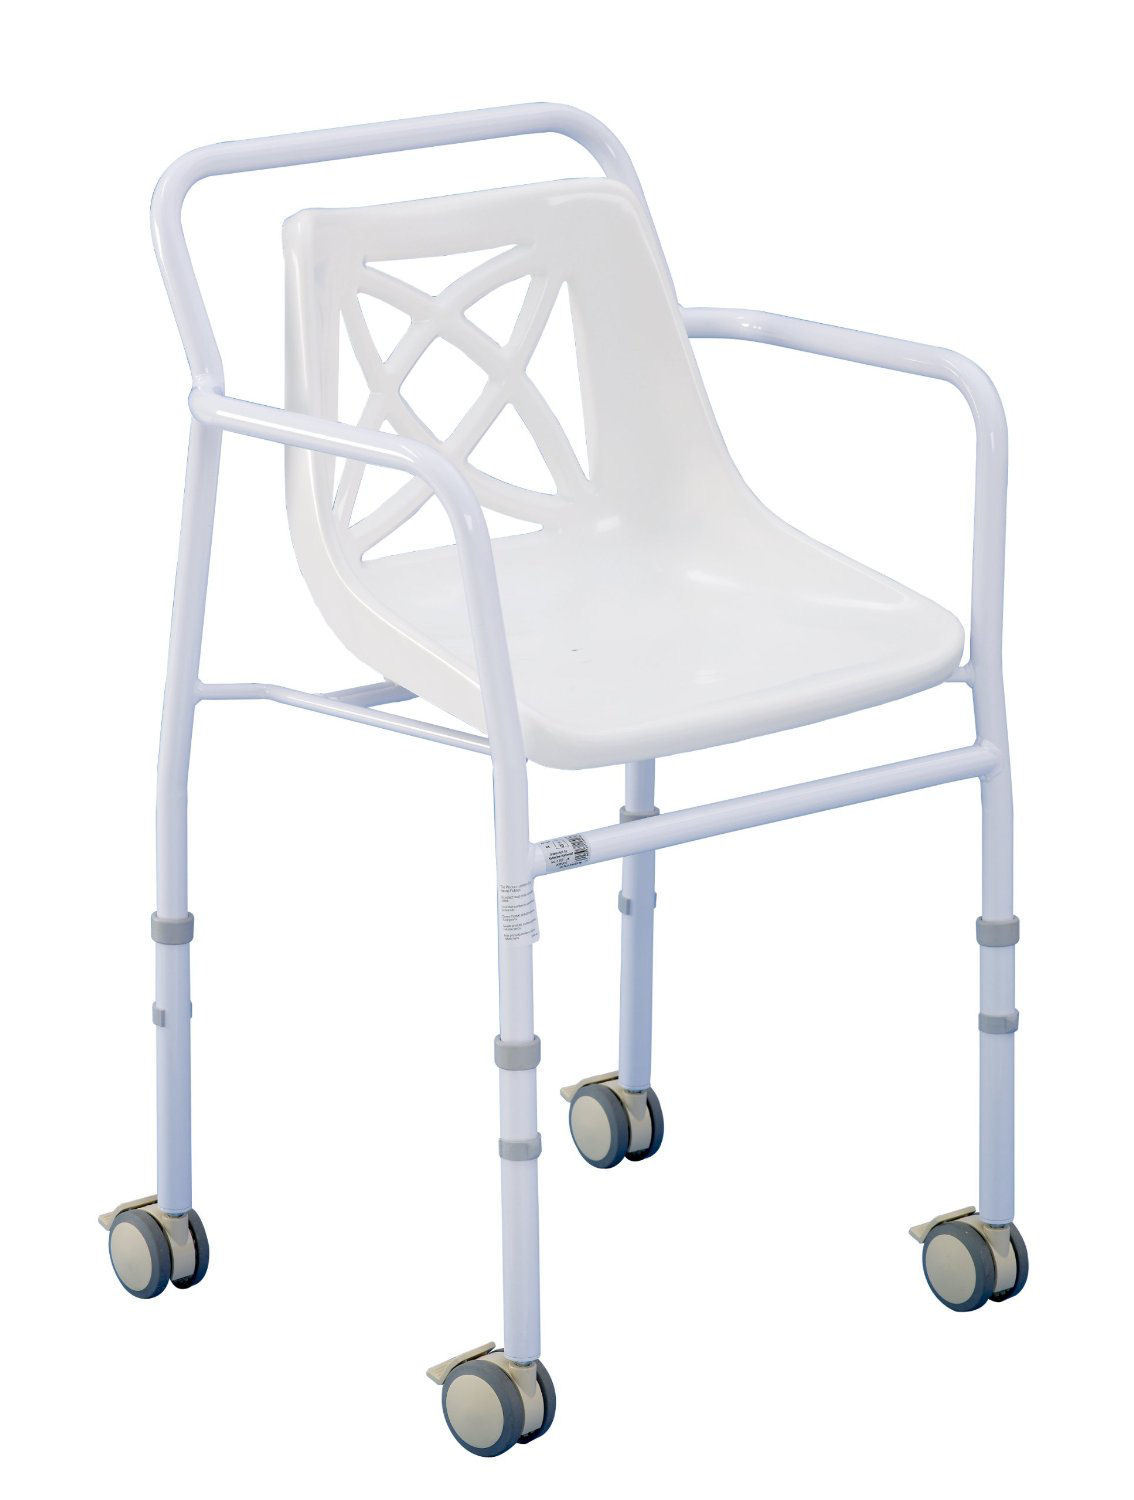 Harrogate Shower Chair - Wheeled Adjustable Height - Shower Chairs ...